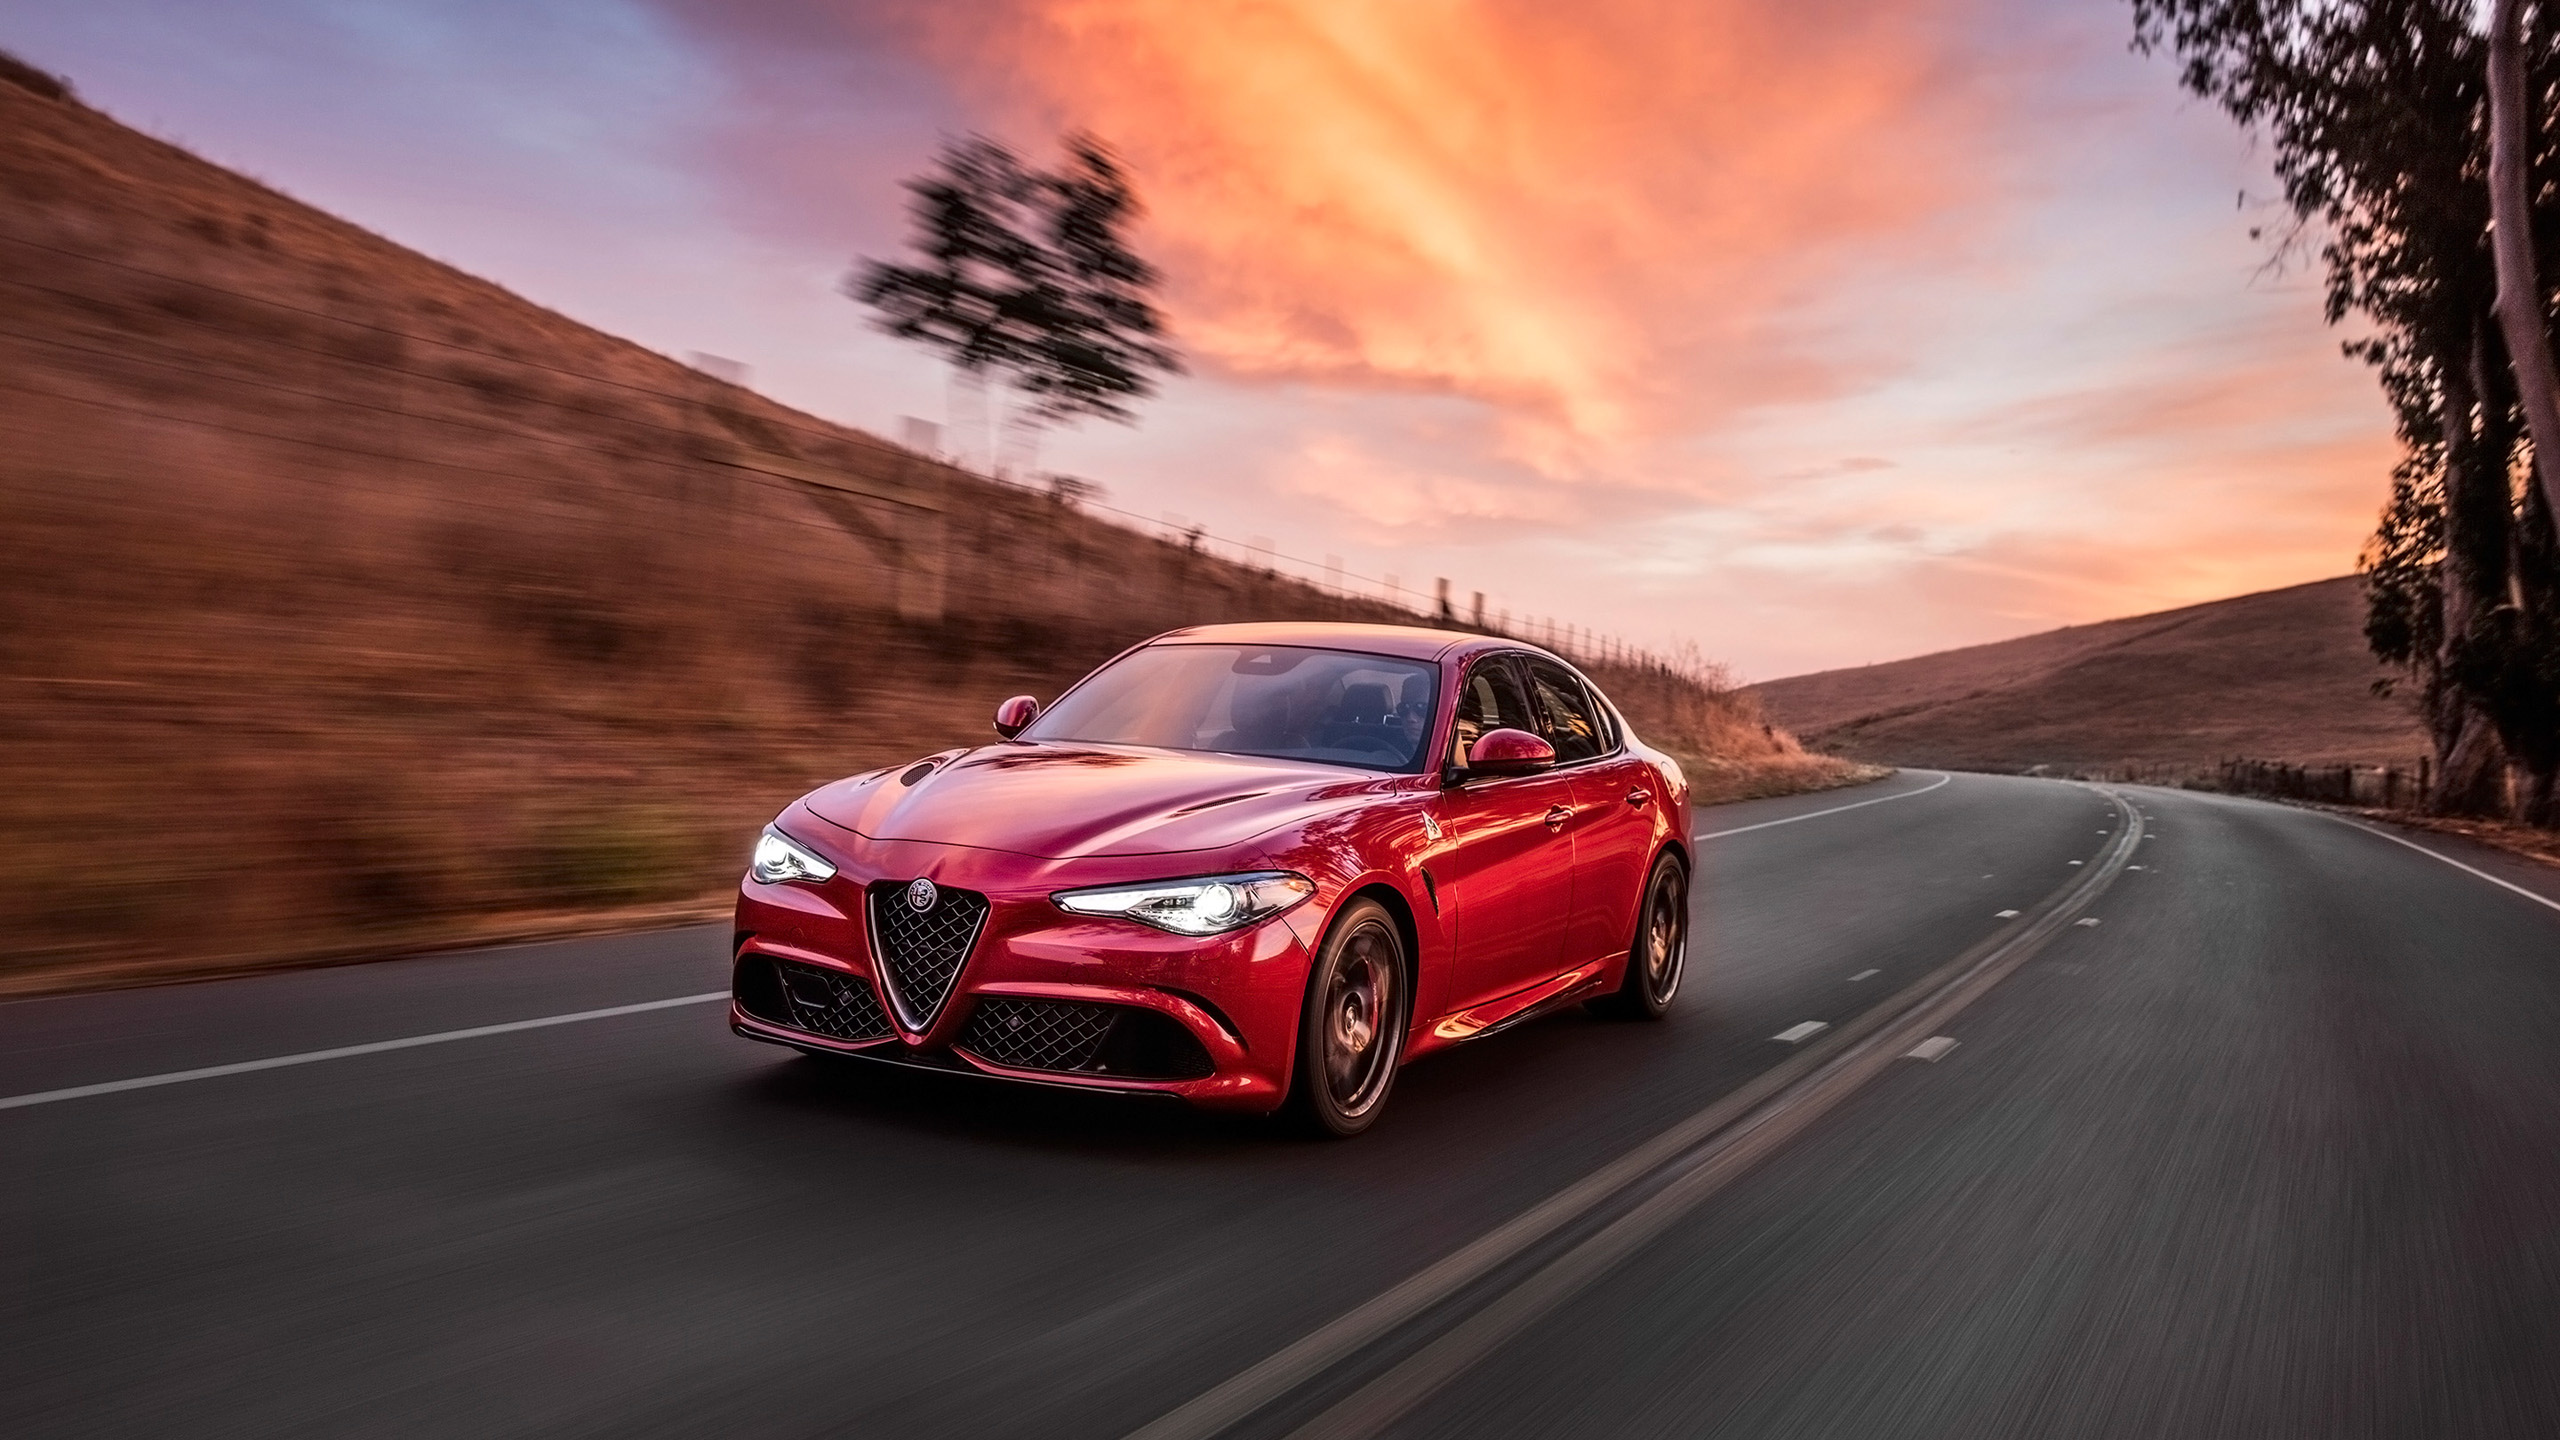 Opel Jeep 2017 >> 2017 Alfa Romeo Giulia Quadrifoglio Wallpaper | HD Car Wallpapers | ID #7295